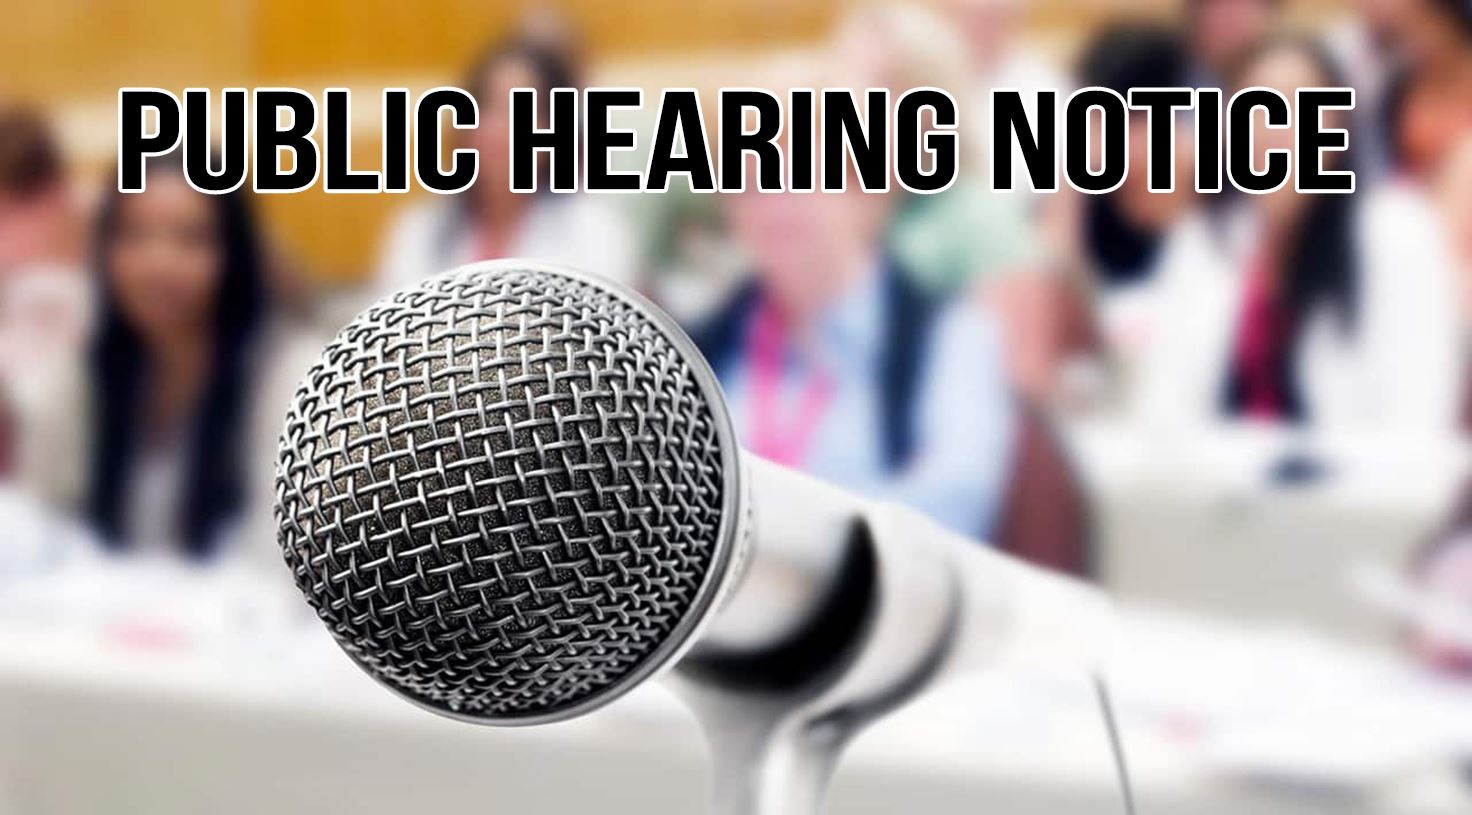 A public hearing will be held at 7:00 on November 18 to consider a Conditional use request for pet c